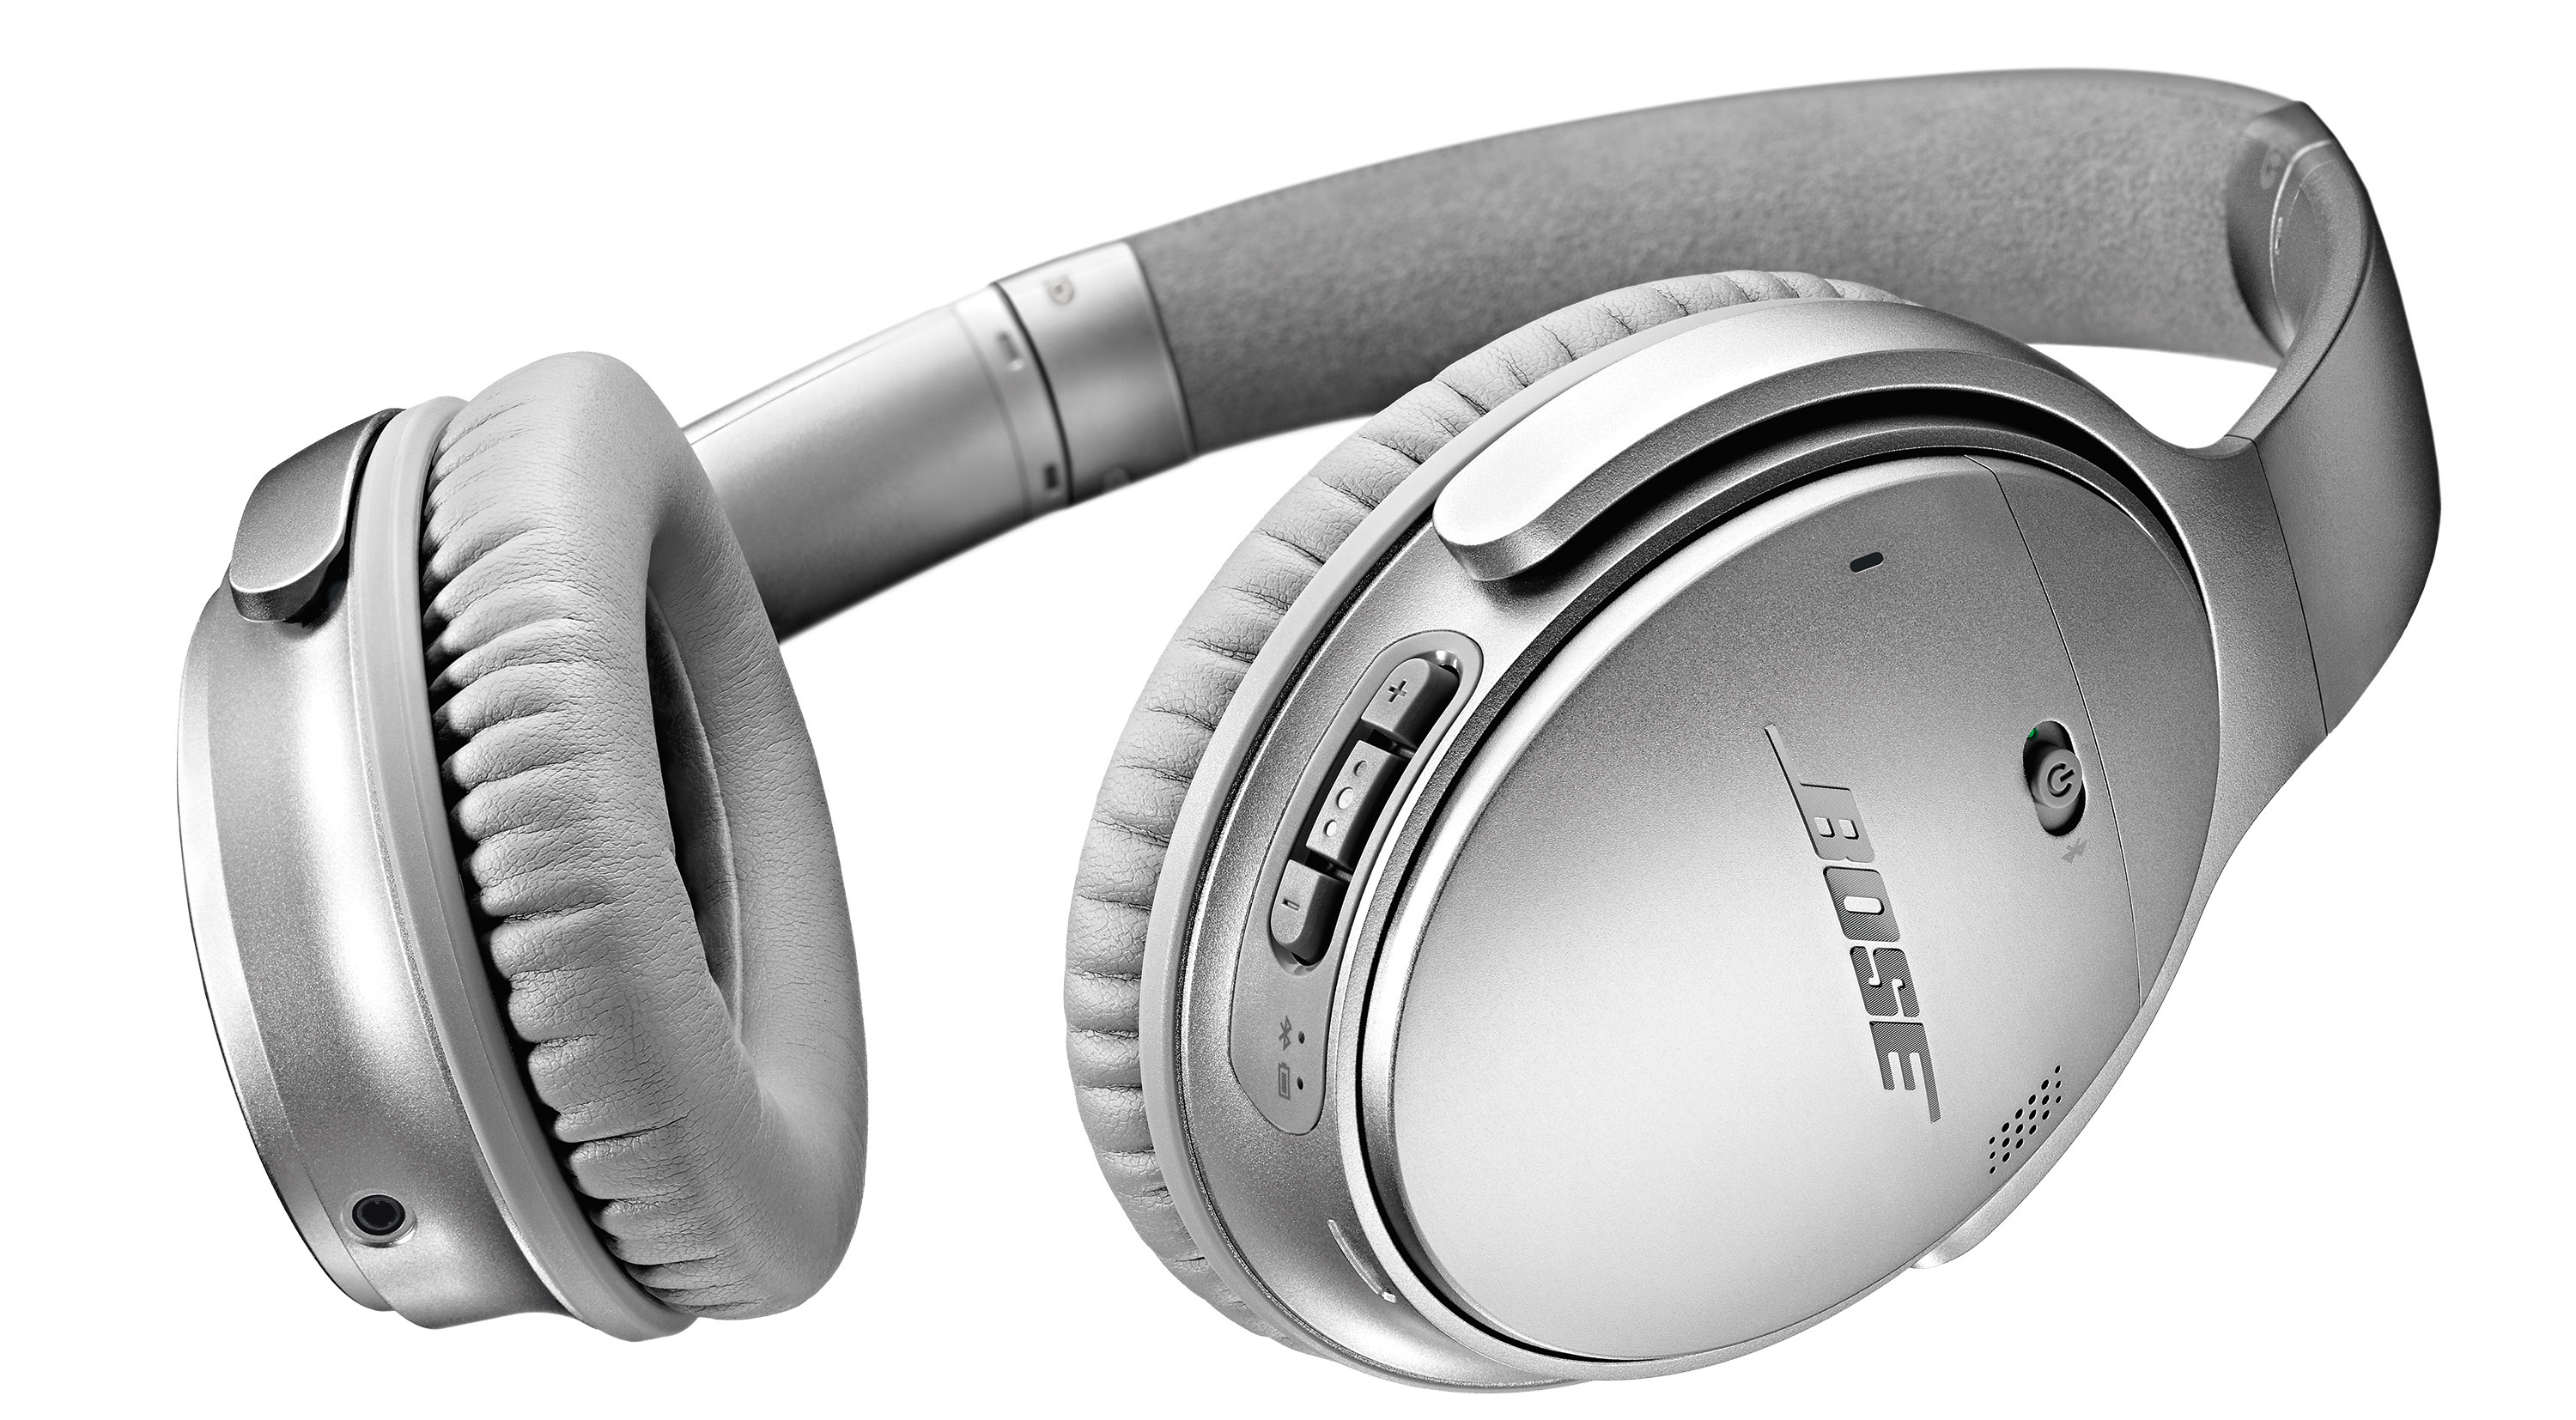 Customer Says Bose Wireless Headphones Are Tracking What You Listen To & Sharing That Info Without Permission